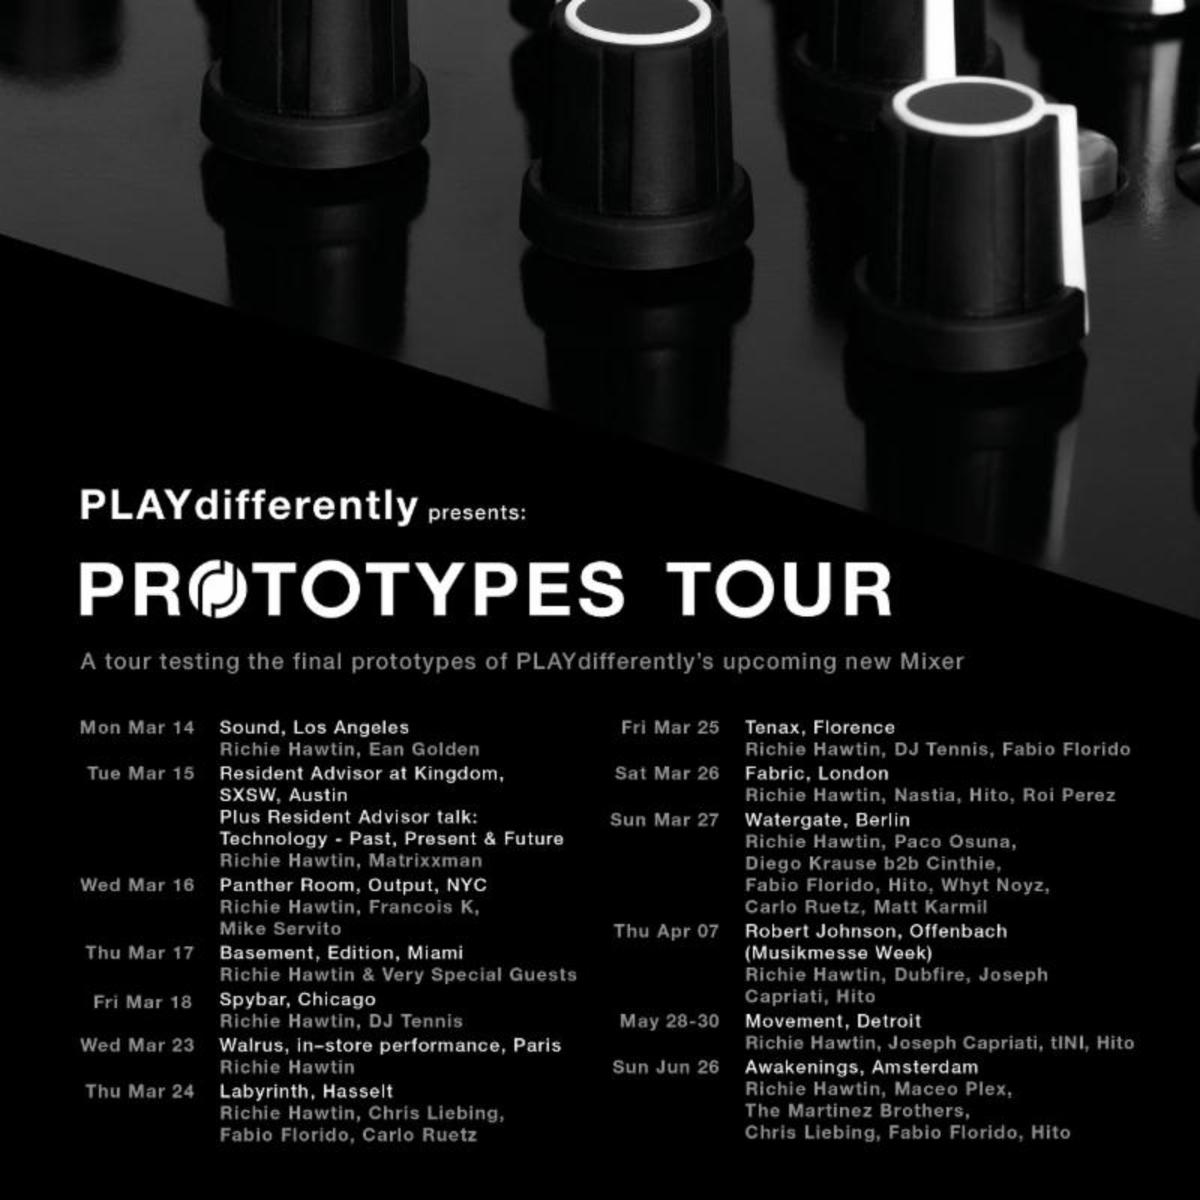 PLAYdifferently PROTOTYPES TOUR